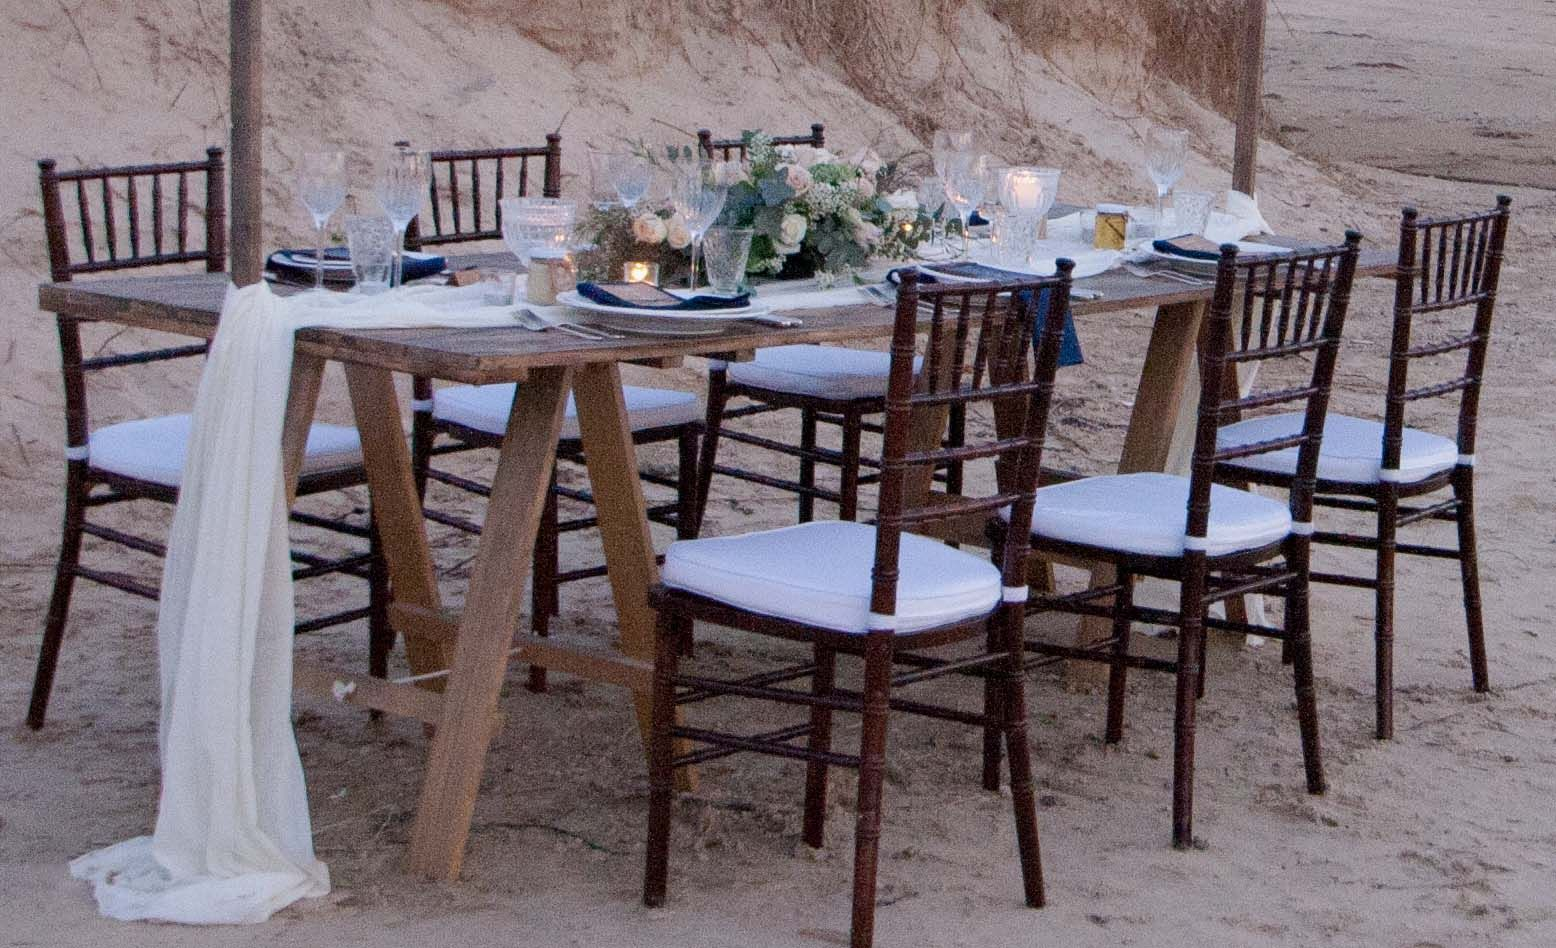 Wedding Stylists Furniture Hire Tiffany Chiavari Chairs Cross Back Bentwood Vintage French Lounges Timber Trestle Table